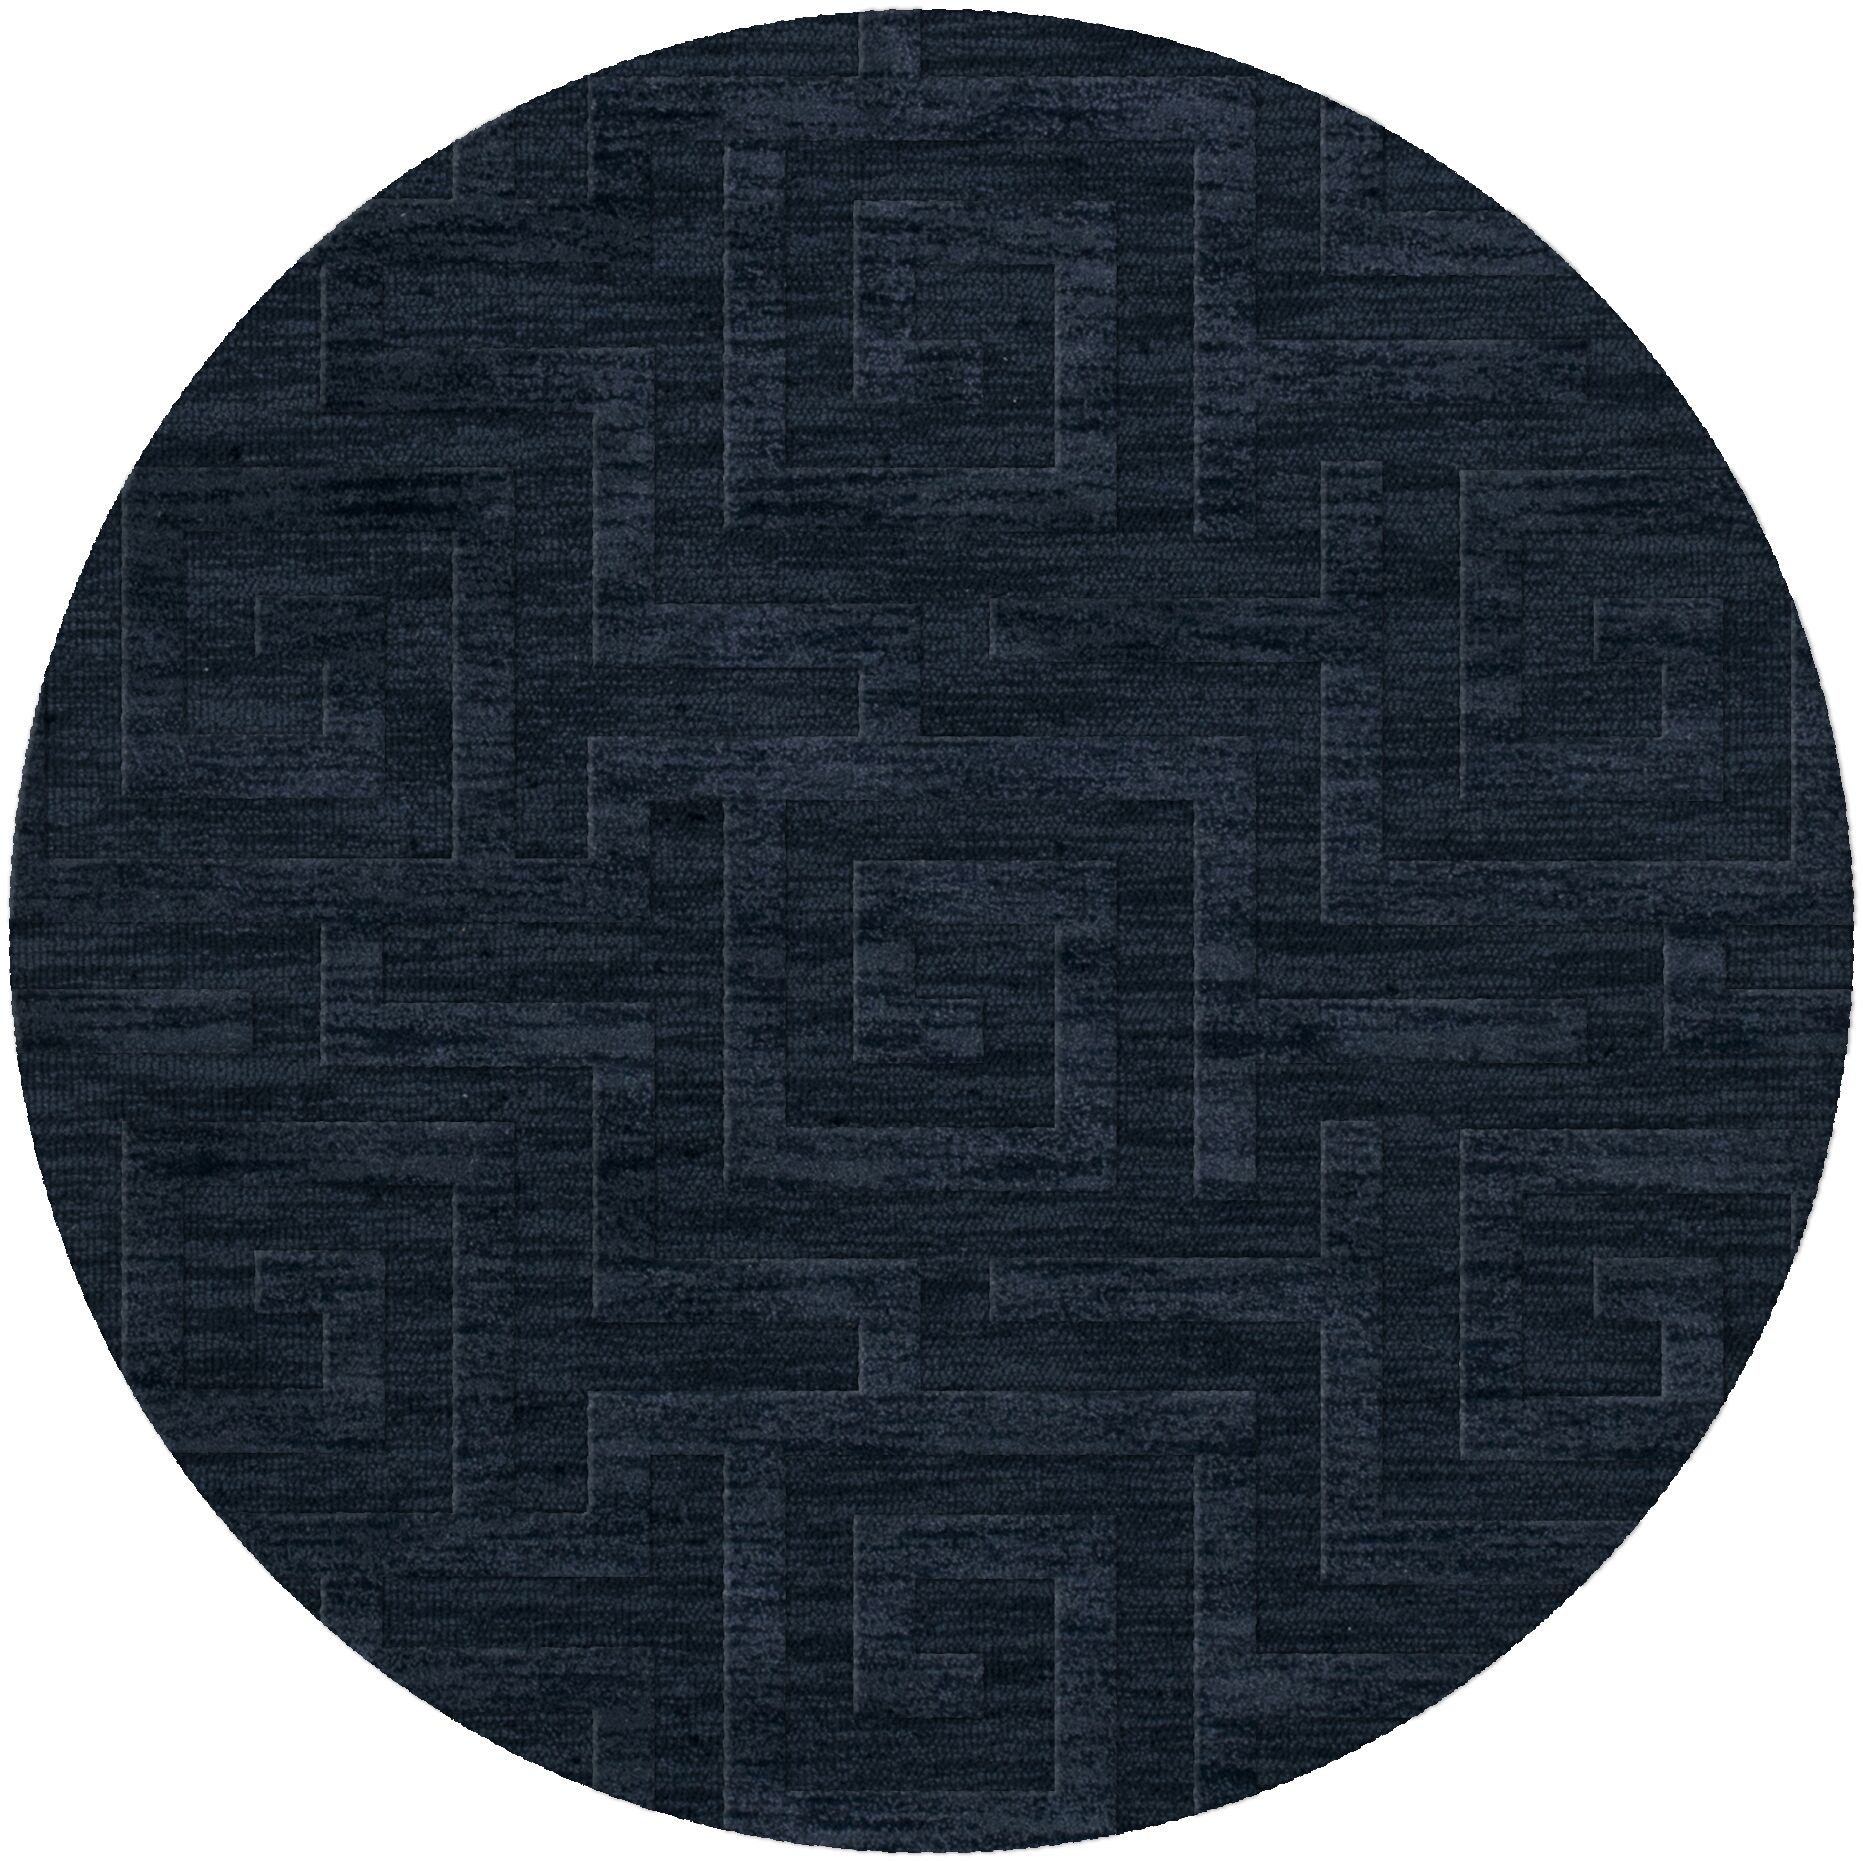 Dover Tufted Wool Navy Area Rug Rug Size: Round 10'